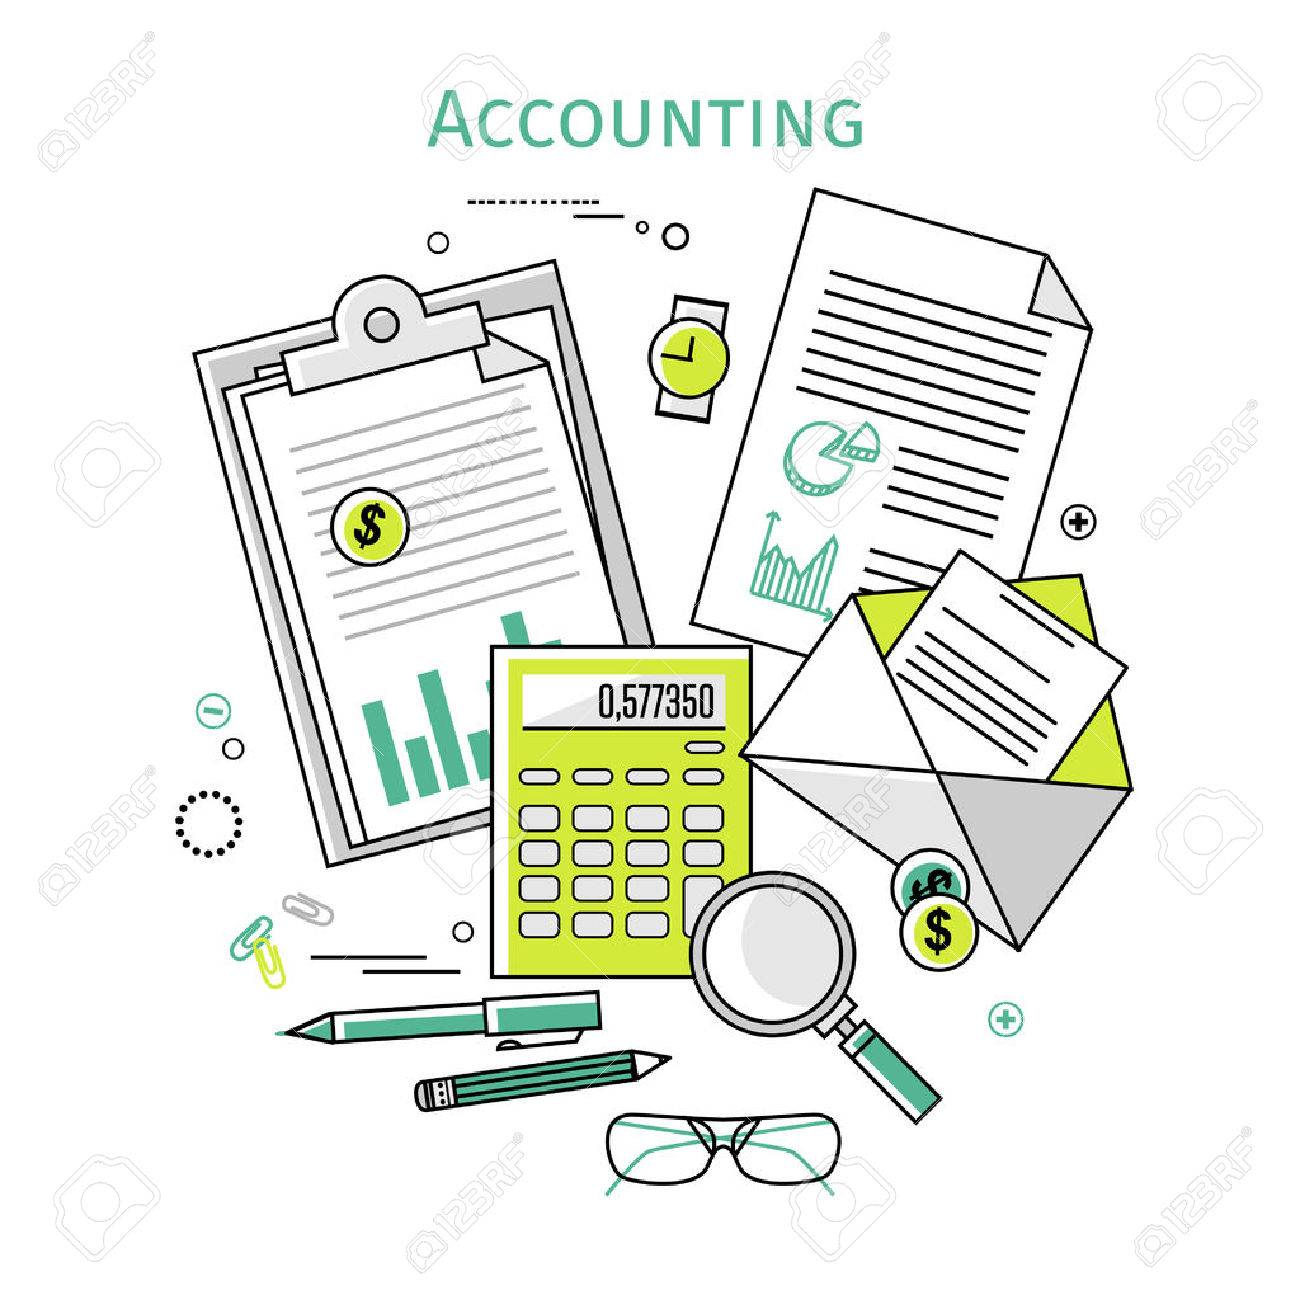 Flat linear vector icons illustration design concepts for business and finance. Top view. Concepts for taxes, finance, bookkeeping, accounting, business, market etc. - 42137151